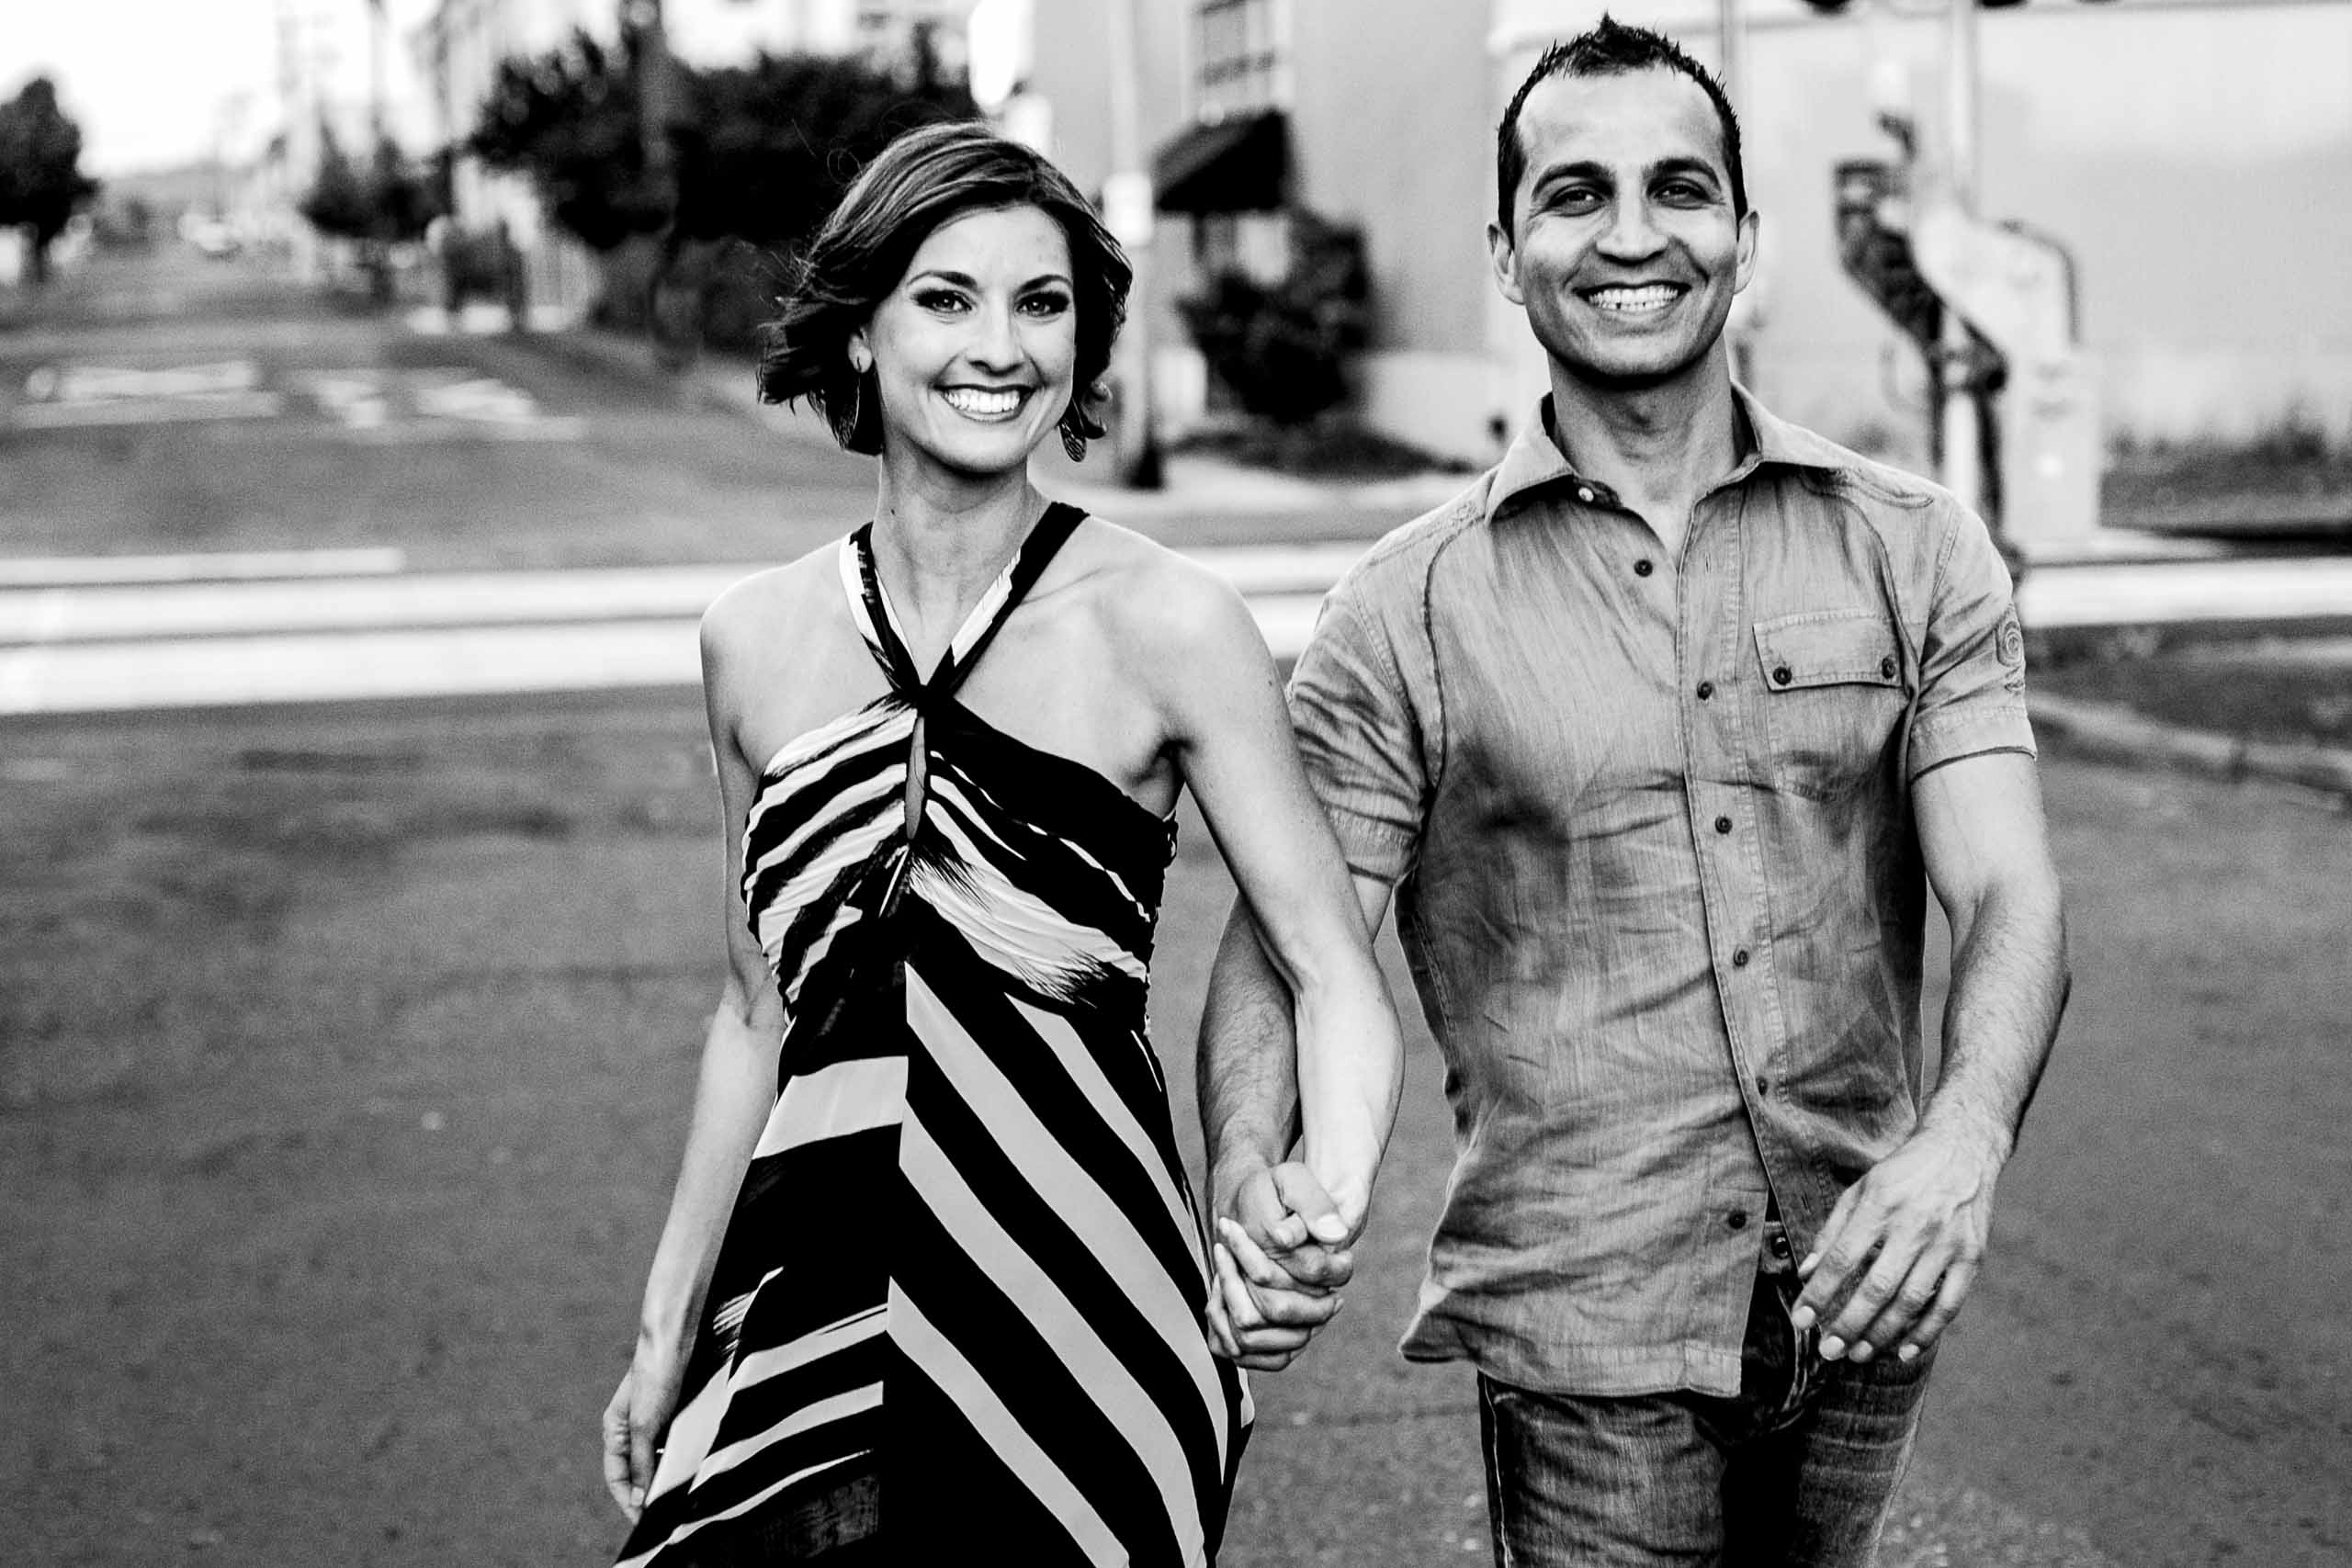 Gorgeous Portland engagement photo of a couple super happy and madly in love